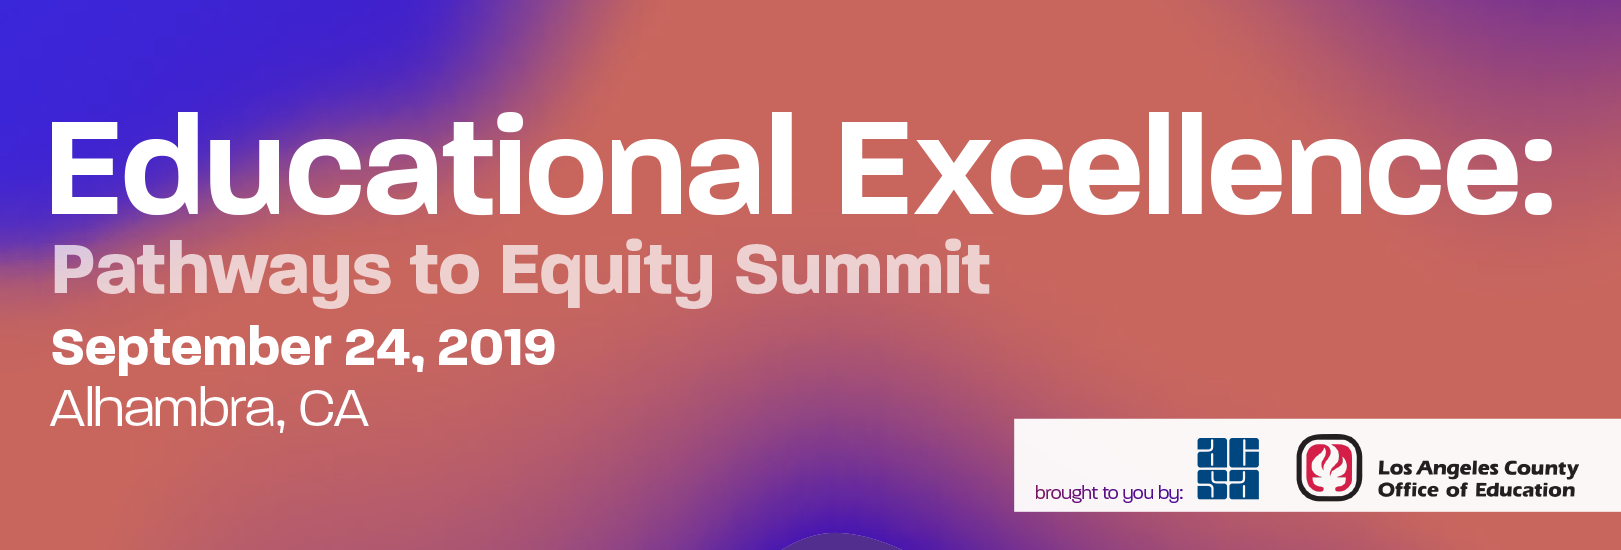 2019 Educational Excellence: Pathways to Equity Summit